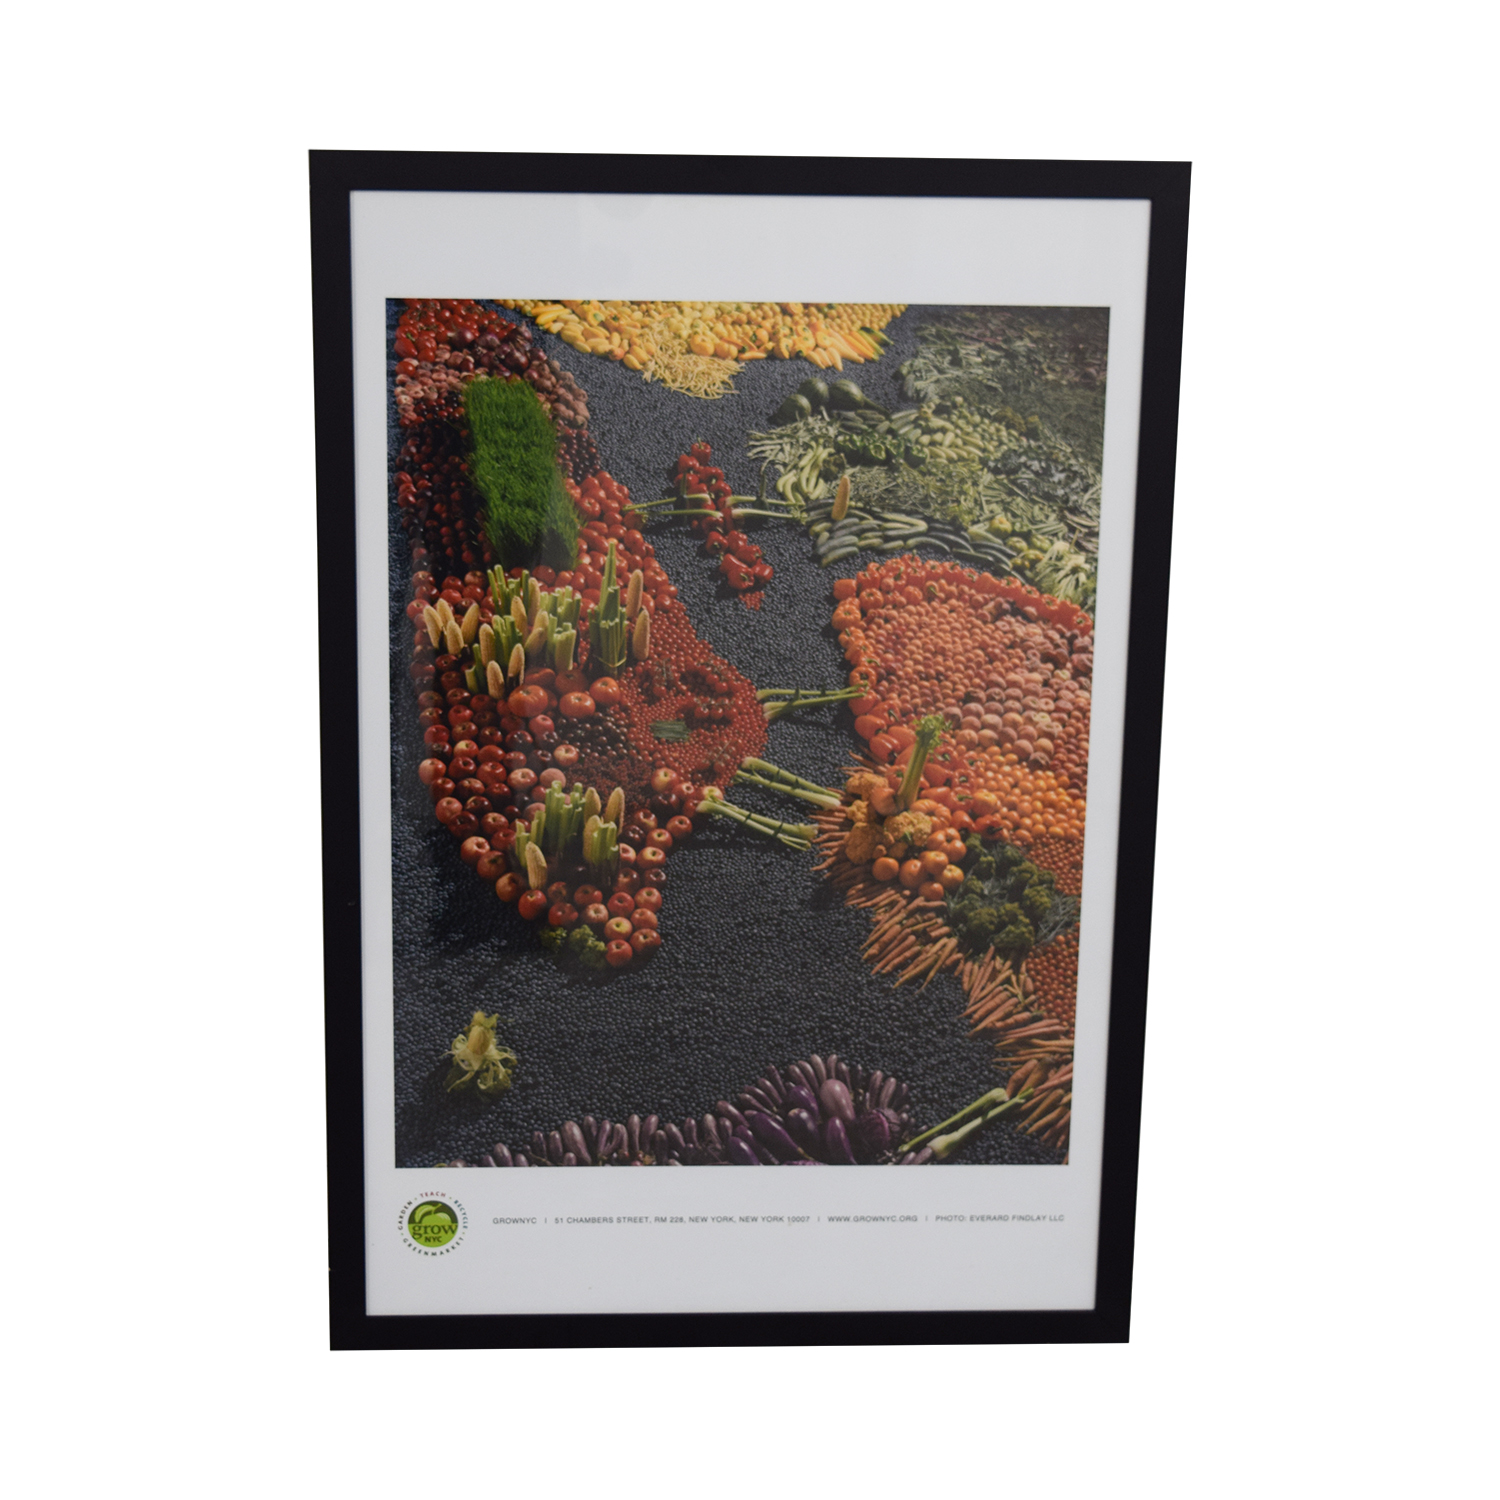 Vegetables Framed Print for sale